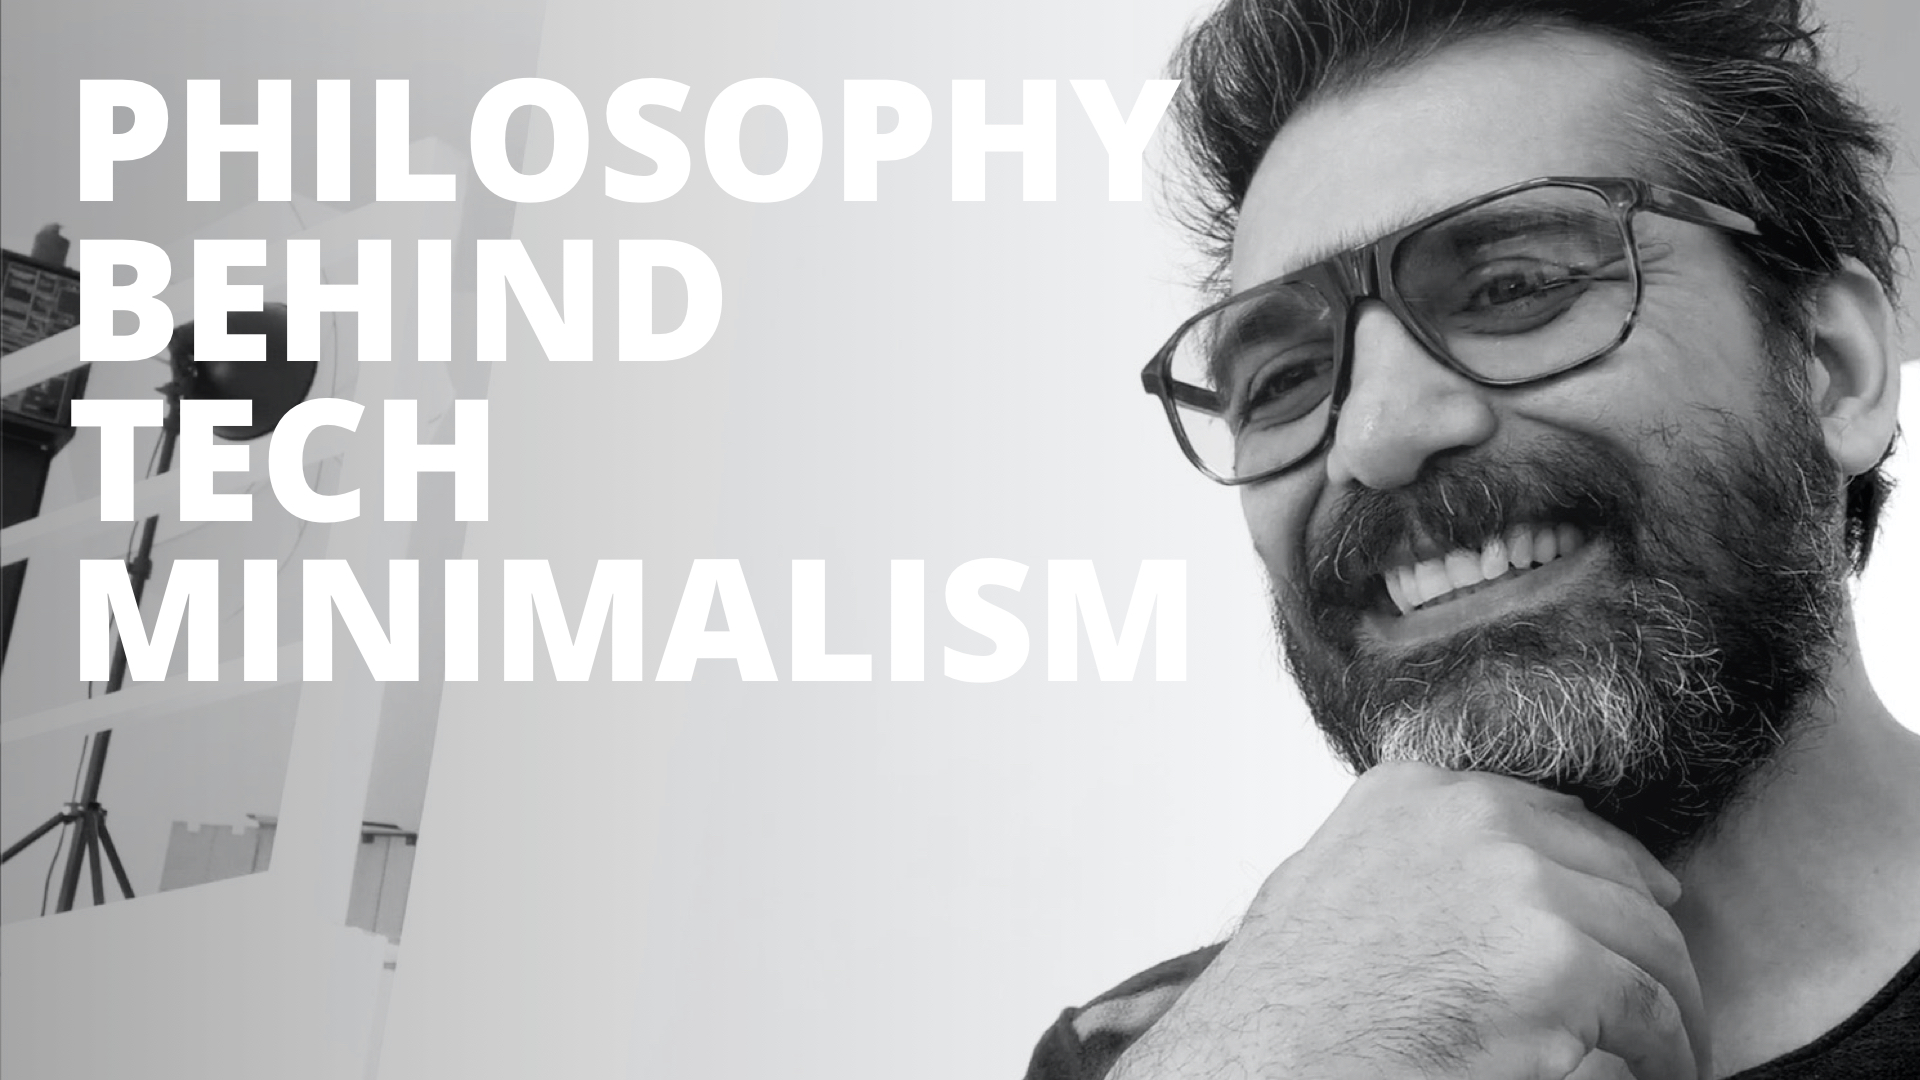 Philosophy behind Tech Minimalism & simplicity